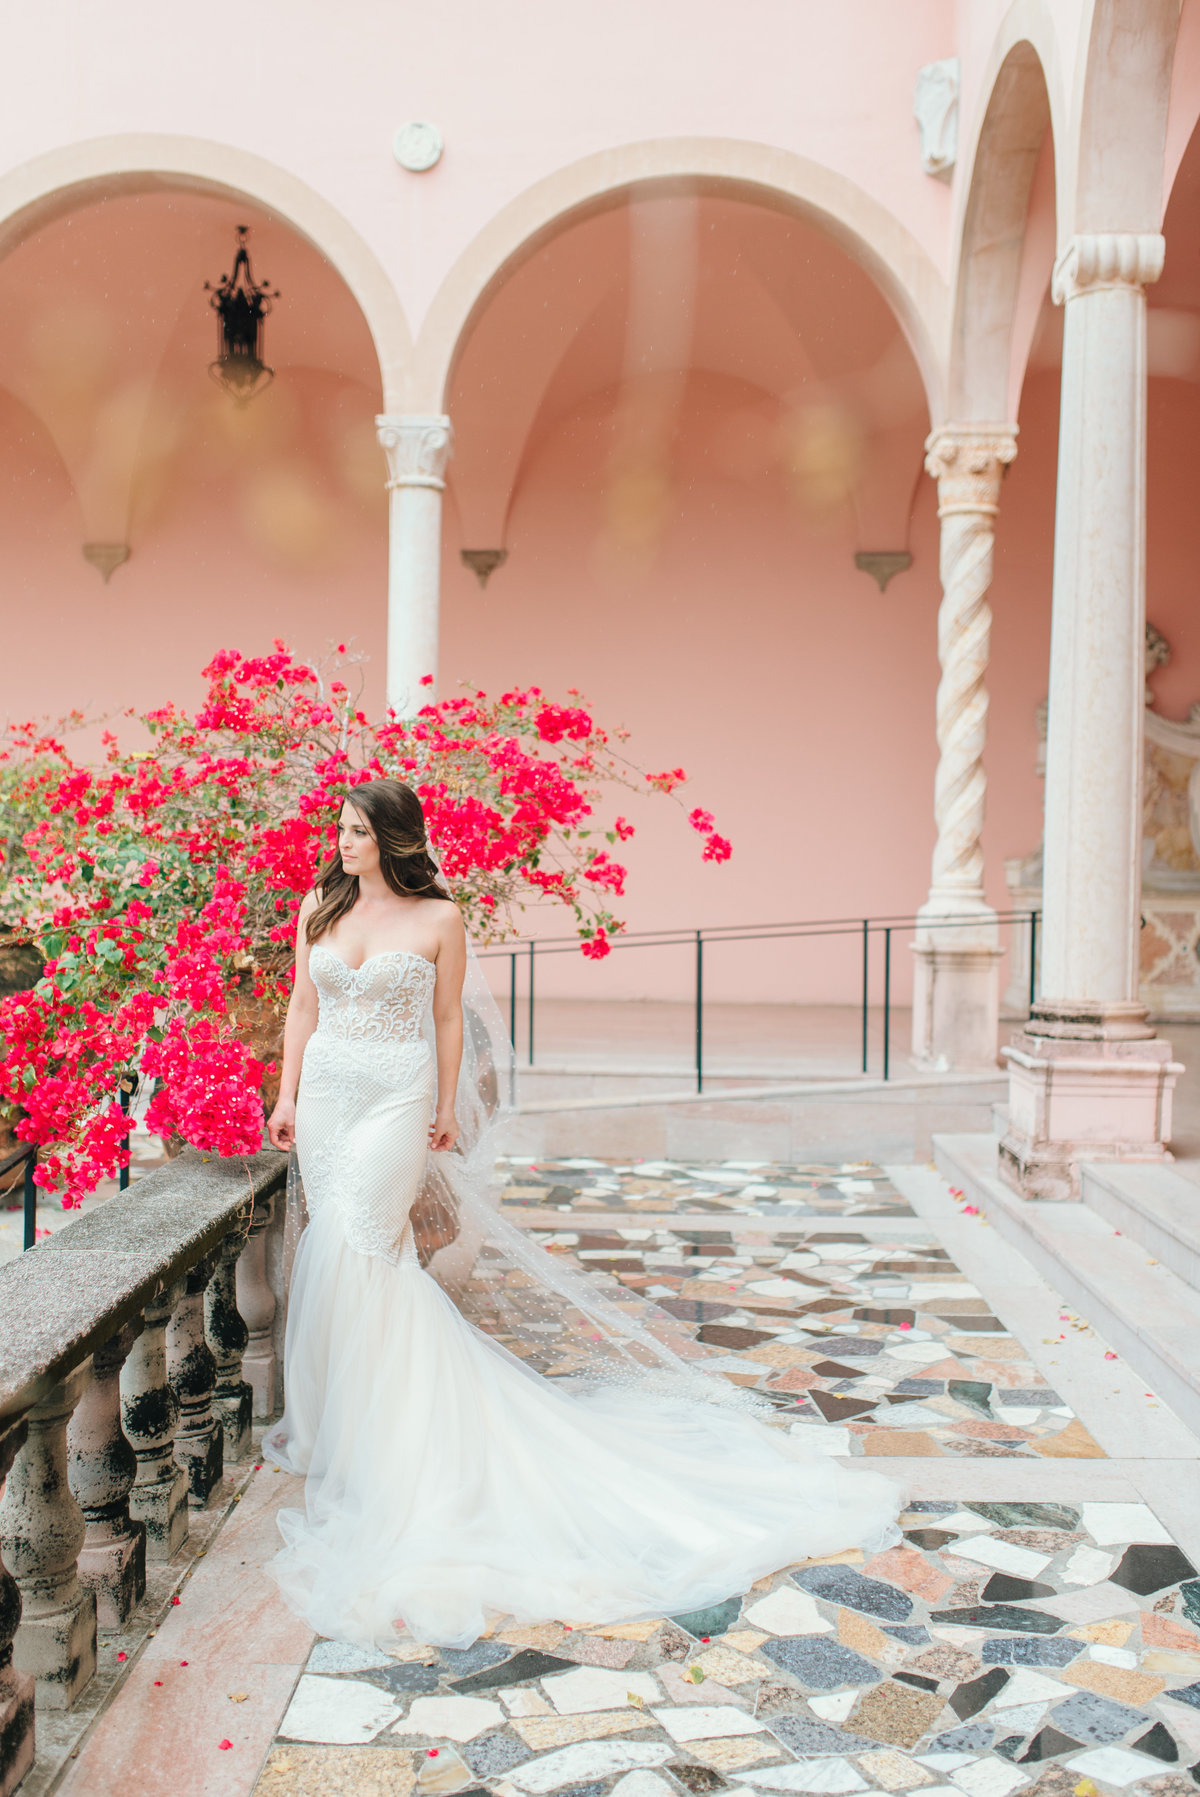 Bride in luxury wedding dress with bougainvillea flowers